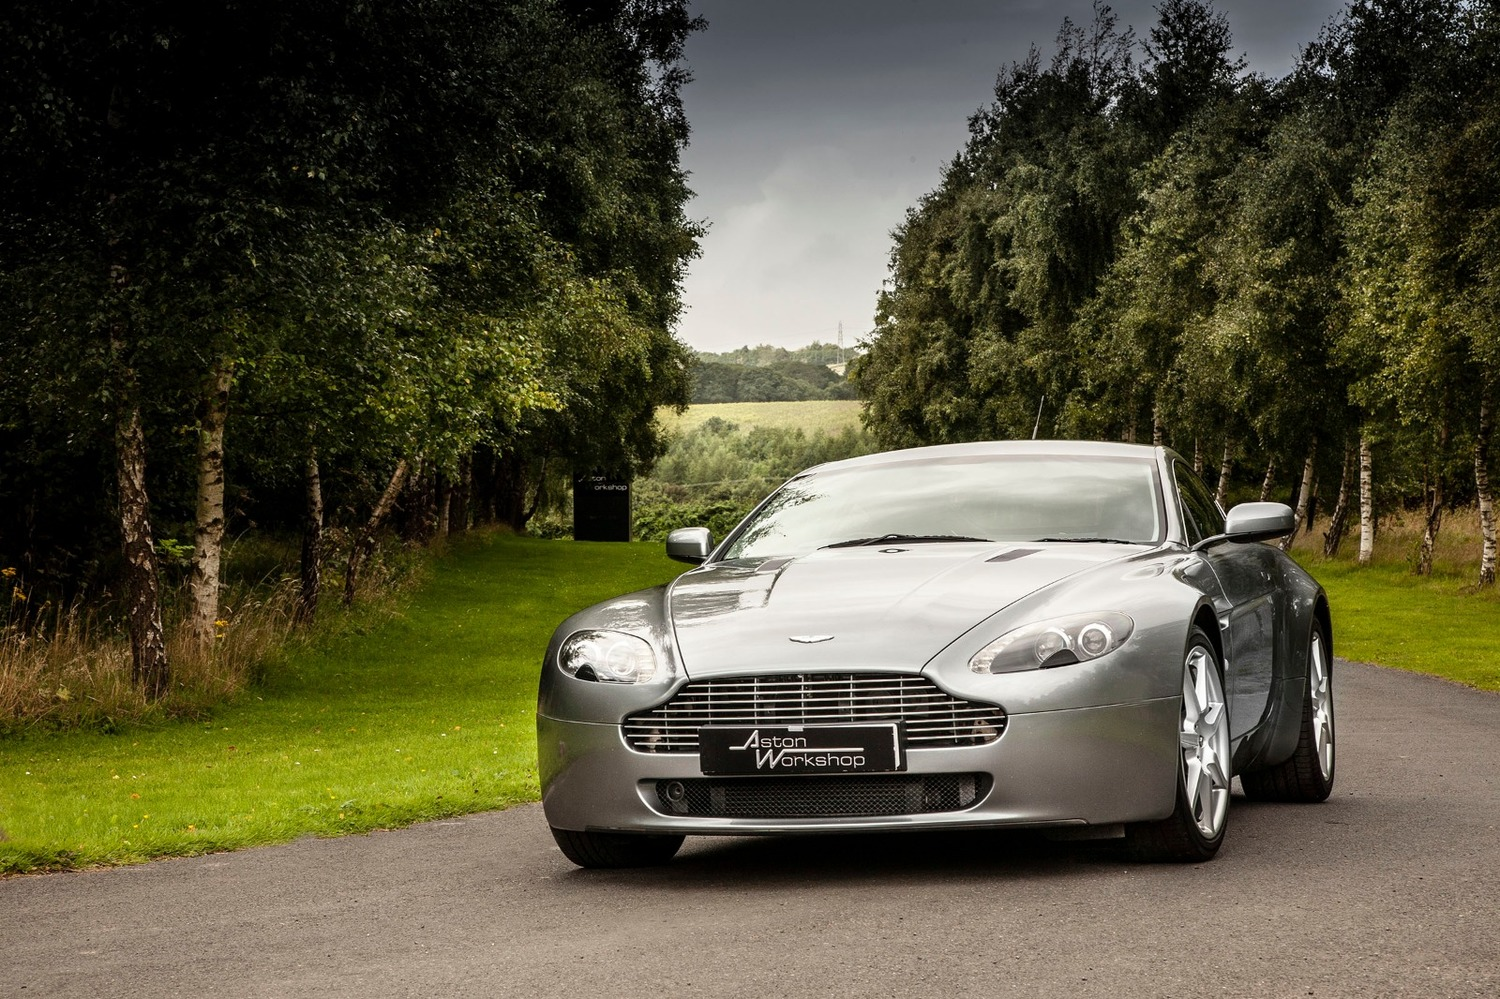 2007 Aston Martin V8 Vantage Coupe Manual Aw200819a